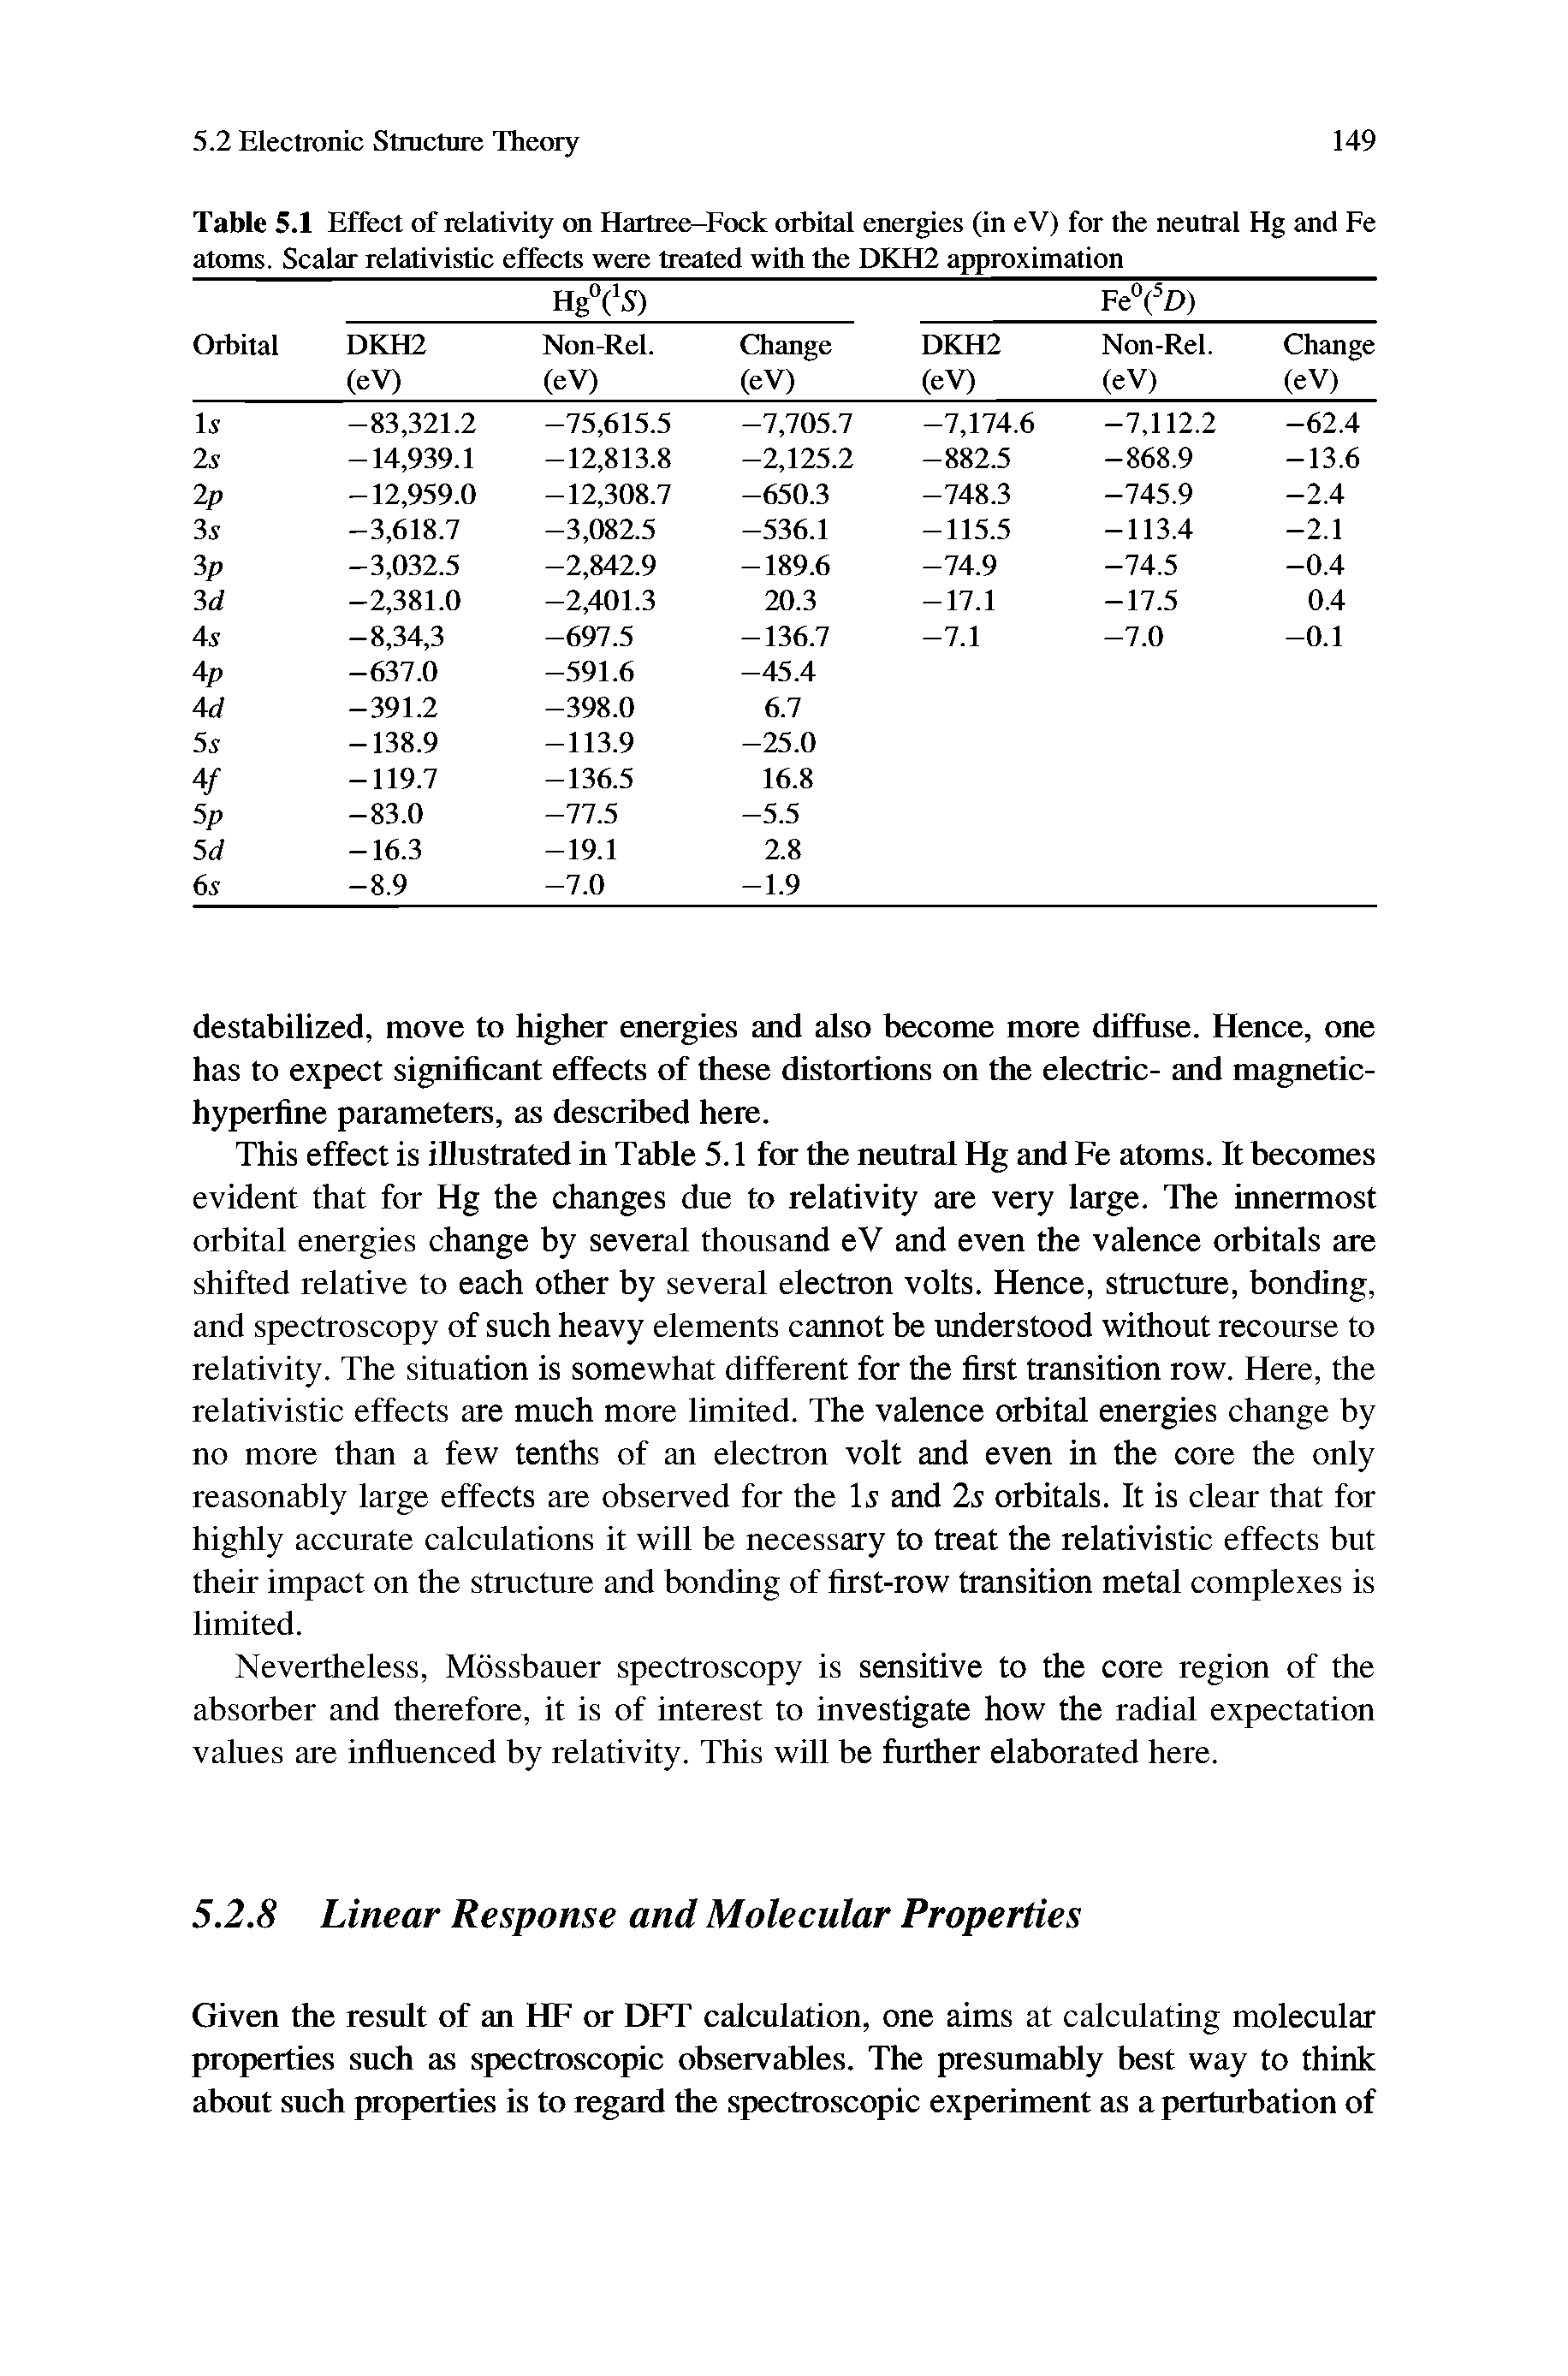 Table 5.1 Effect of relativity on Hartree-Eock orbital energies (in eV) for the neutral Hg and Fe atoms. Scalar relativistic effects were treated with the DKH2 approximation...